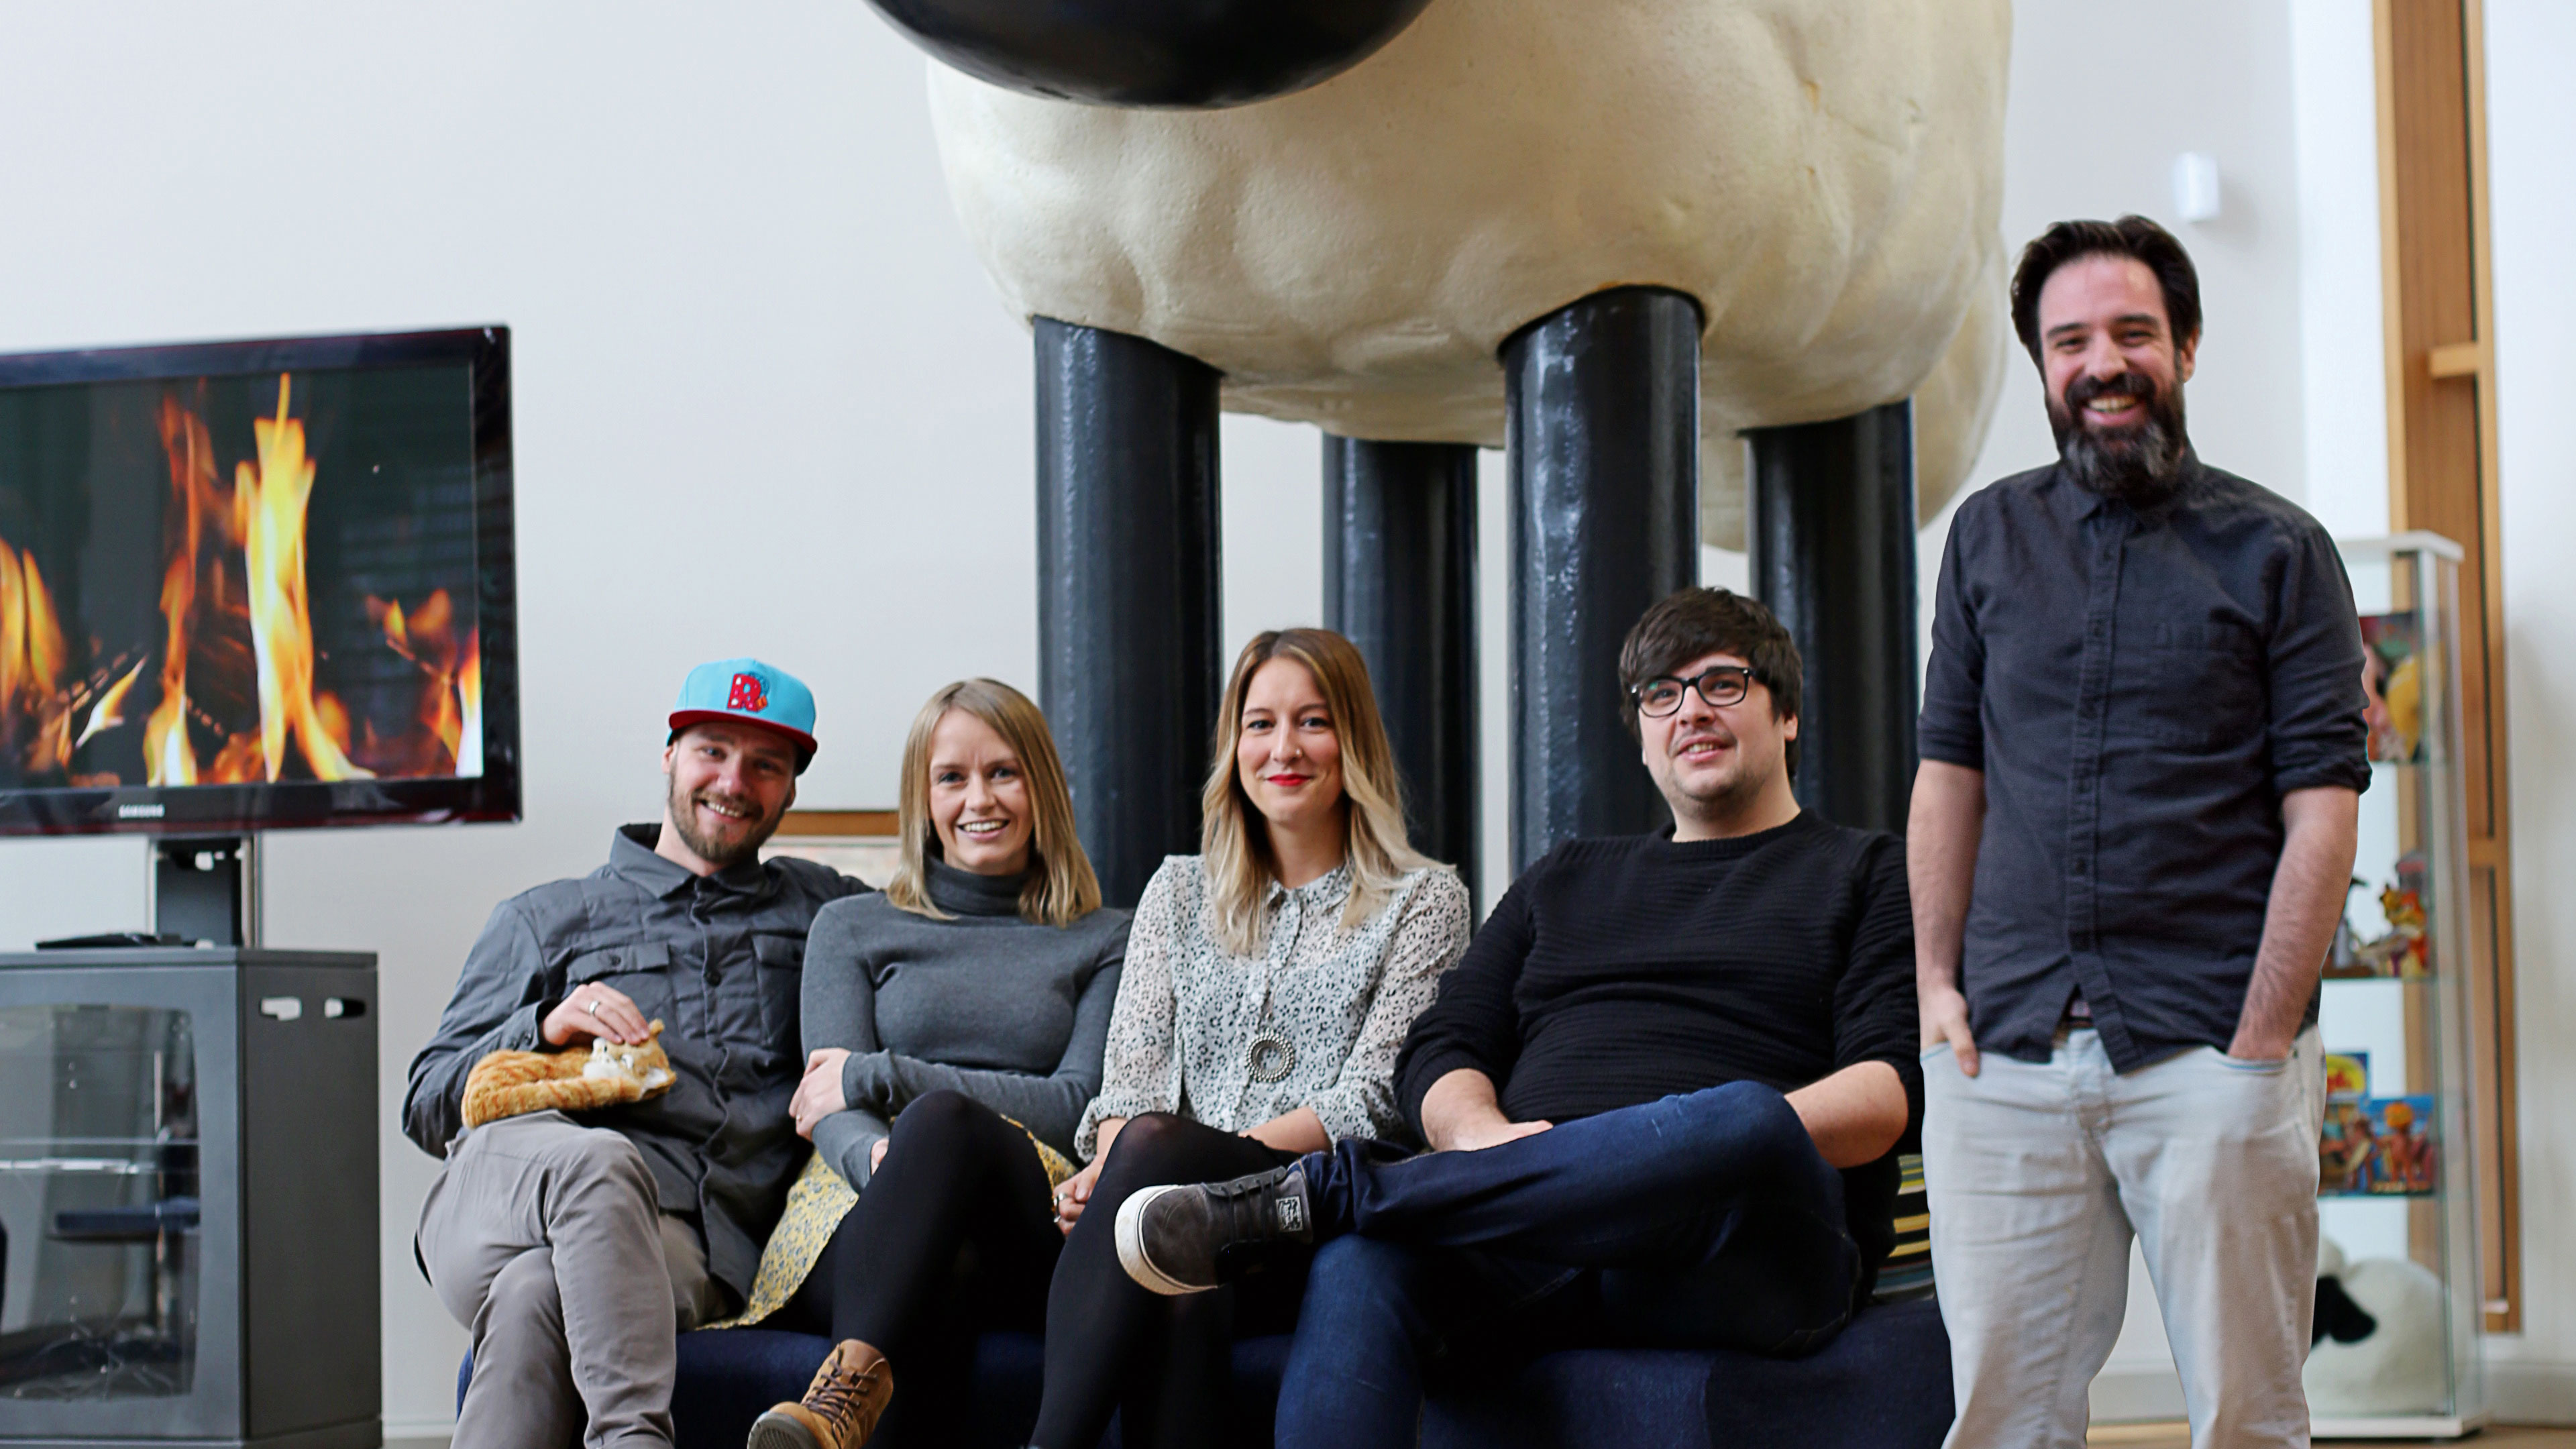 How Aardman Animations created a digital-first culture